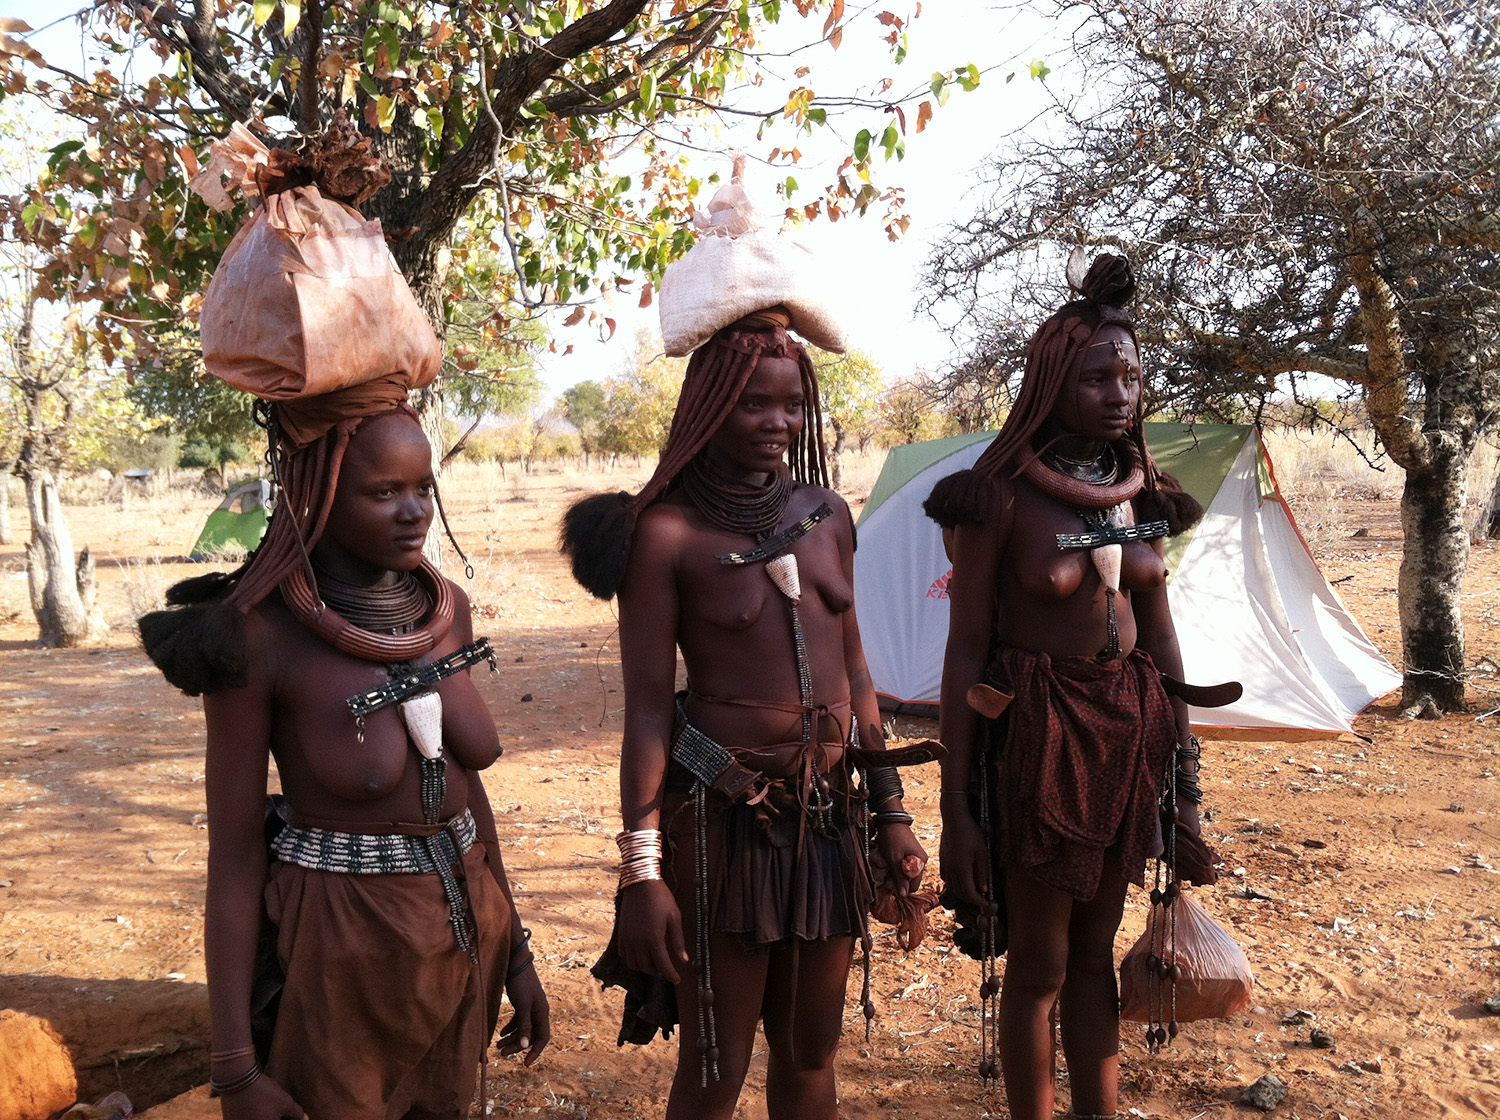 Members of the Himba population